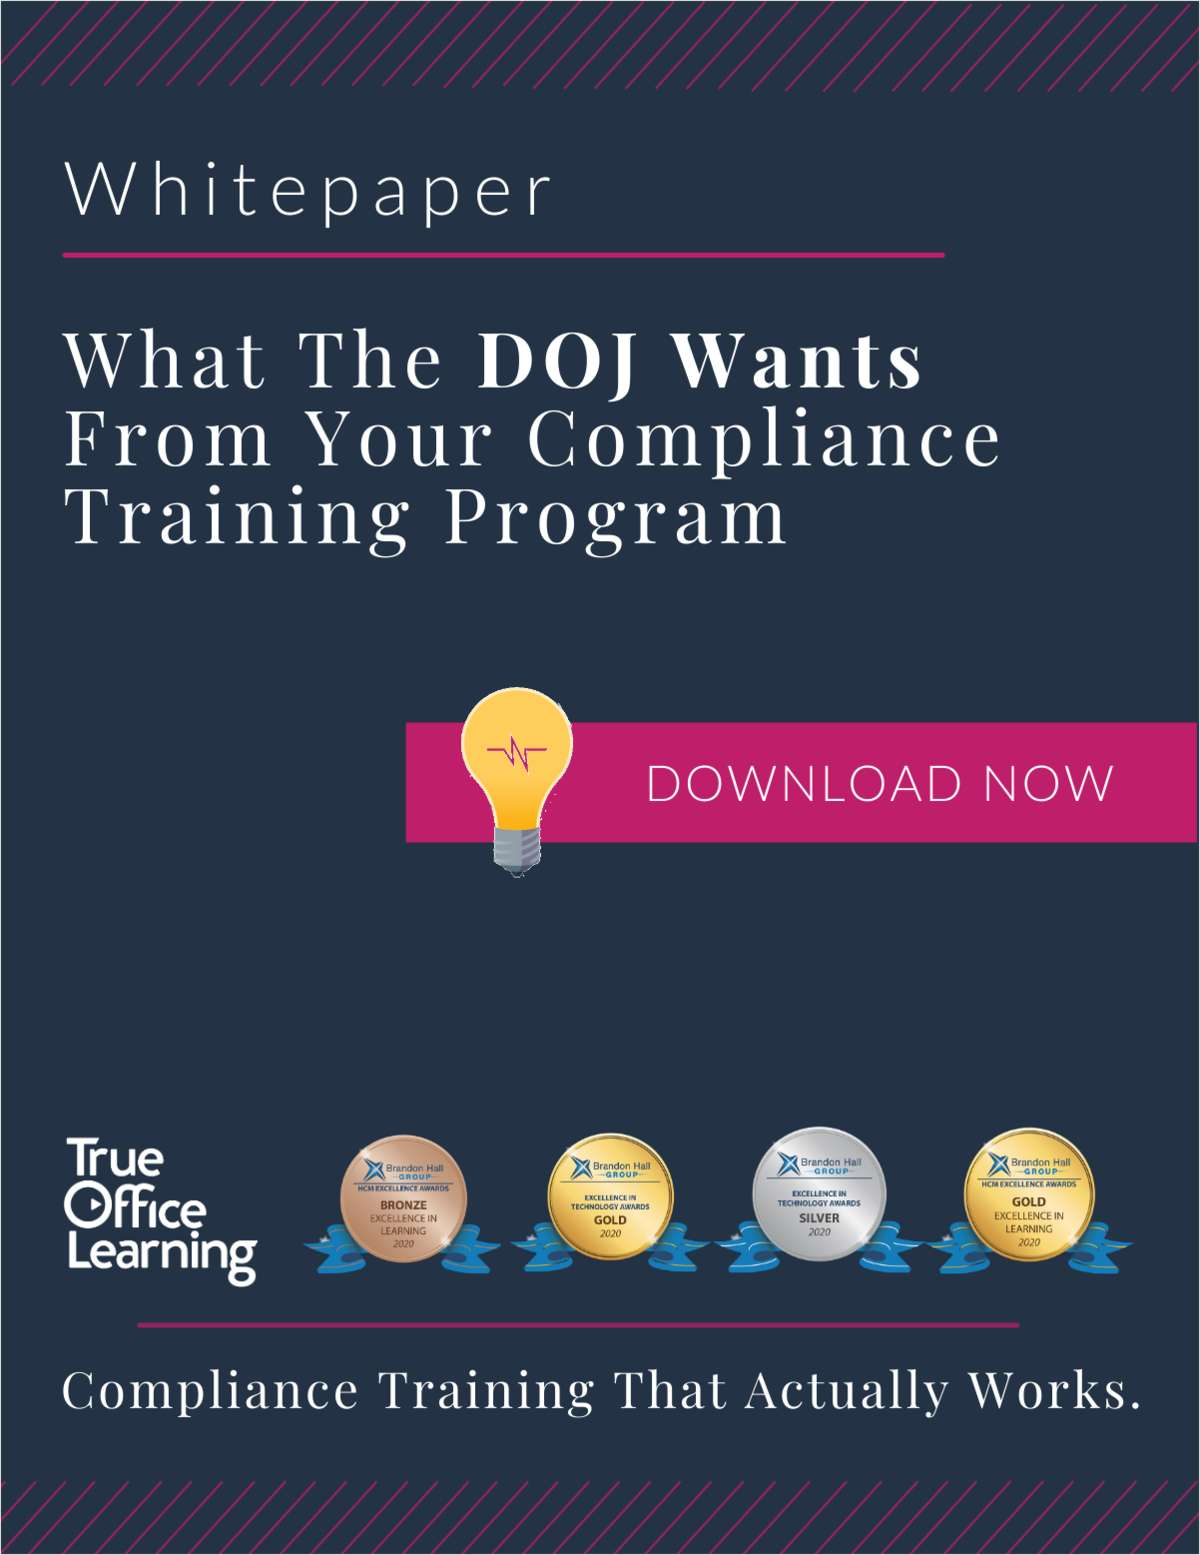 What the DOJ Wants from your Compliance Training Program